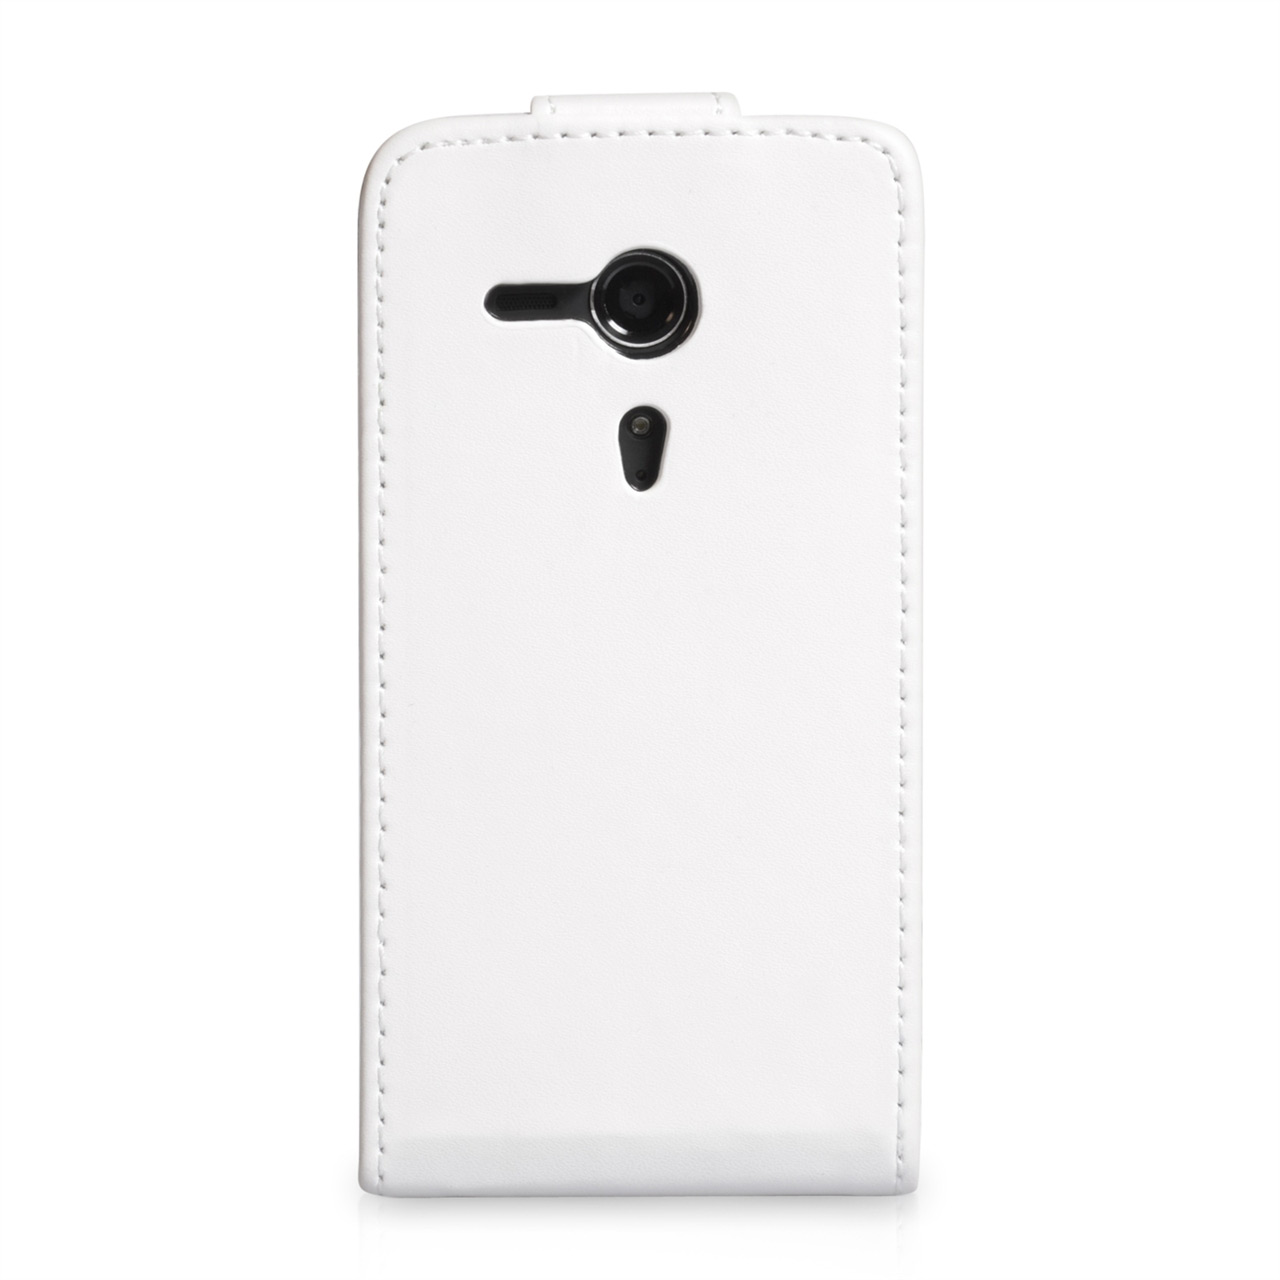 YouSave Accessories Sony Xperia SP Leather-Effect Flip Case - White